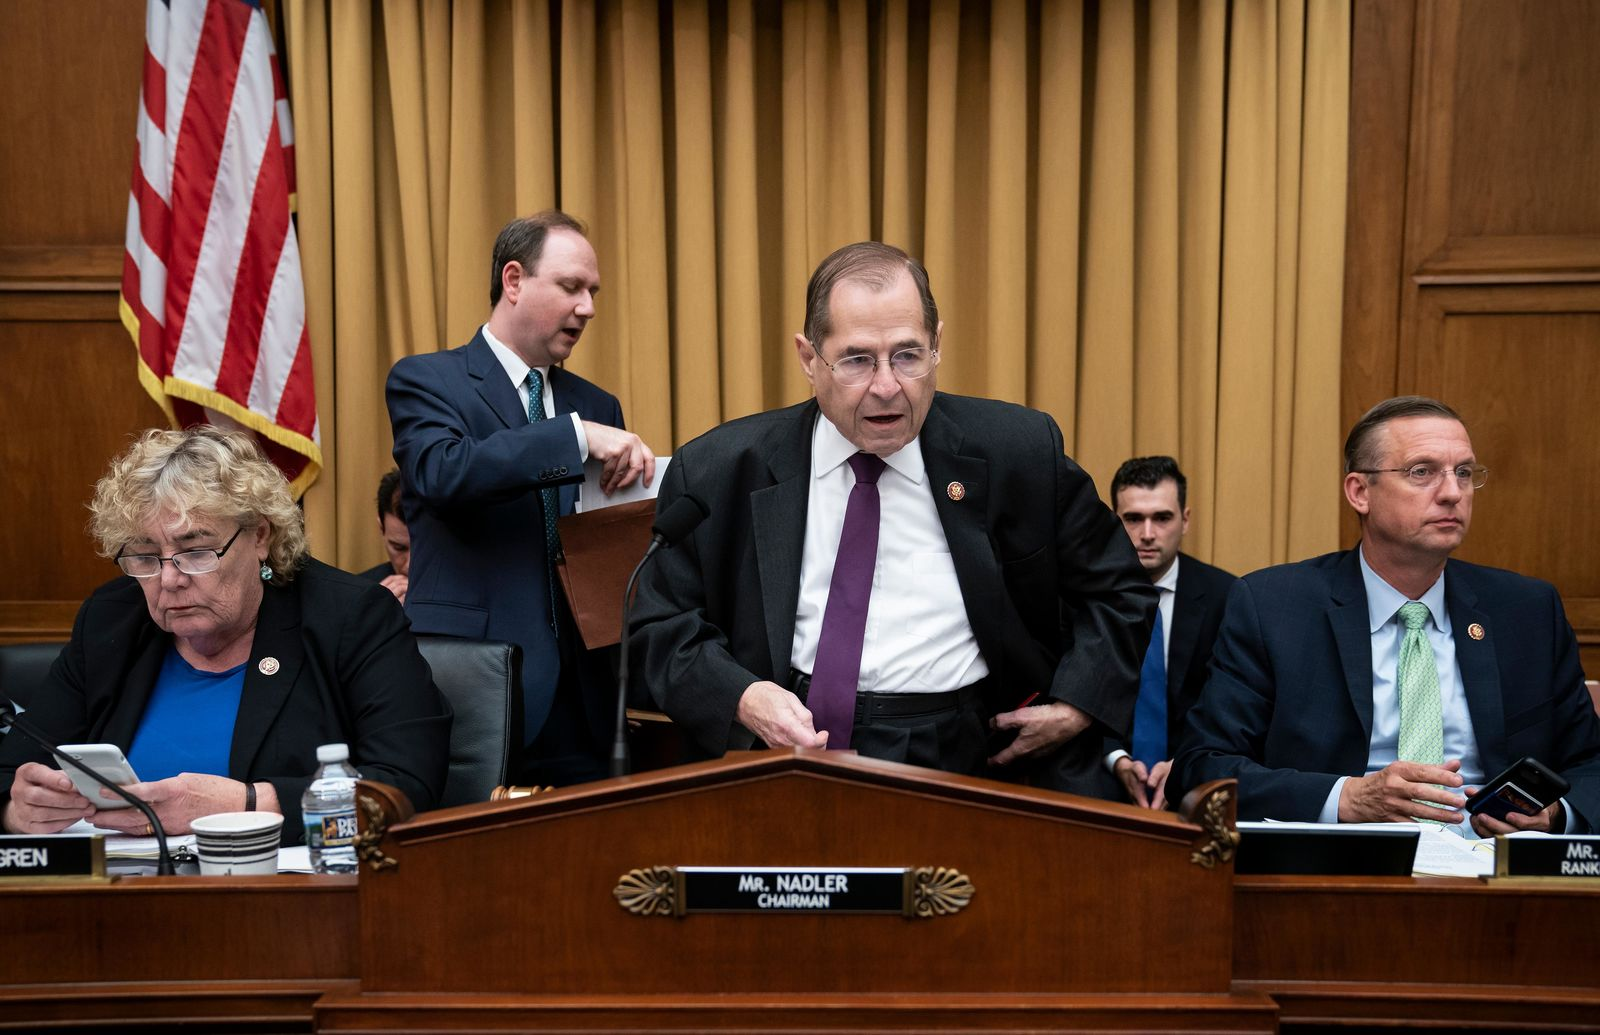 House Judiciary Committee Chairman, Rep. Jerrold Nadler, D-N.Y., flanked by Rep. Zoe Lofgren, D-Calif., left, and Rep. Doug Collins, R-Georgia, the ranking member, arrives to begin a hearing to examine whether President Donald Trump obstructed justice, the first of several hearings scheduled by Democrats on special counsel Robert Mueller's report, on Capitol Hill in Washington, Monday, June 10, 2019. The panel will focus on testimony from former White House counsel John Dean, a star witness from Watergate who helped bring down Richard Nixon's presidency. (AP Photo/J. Scott Applewhite)